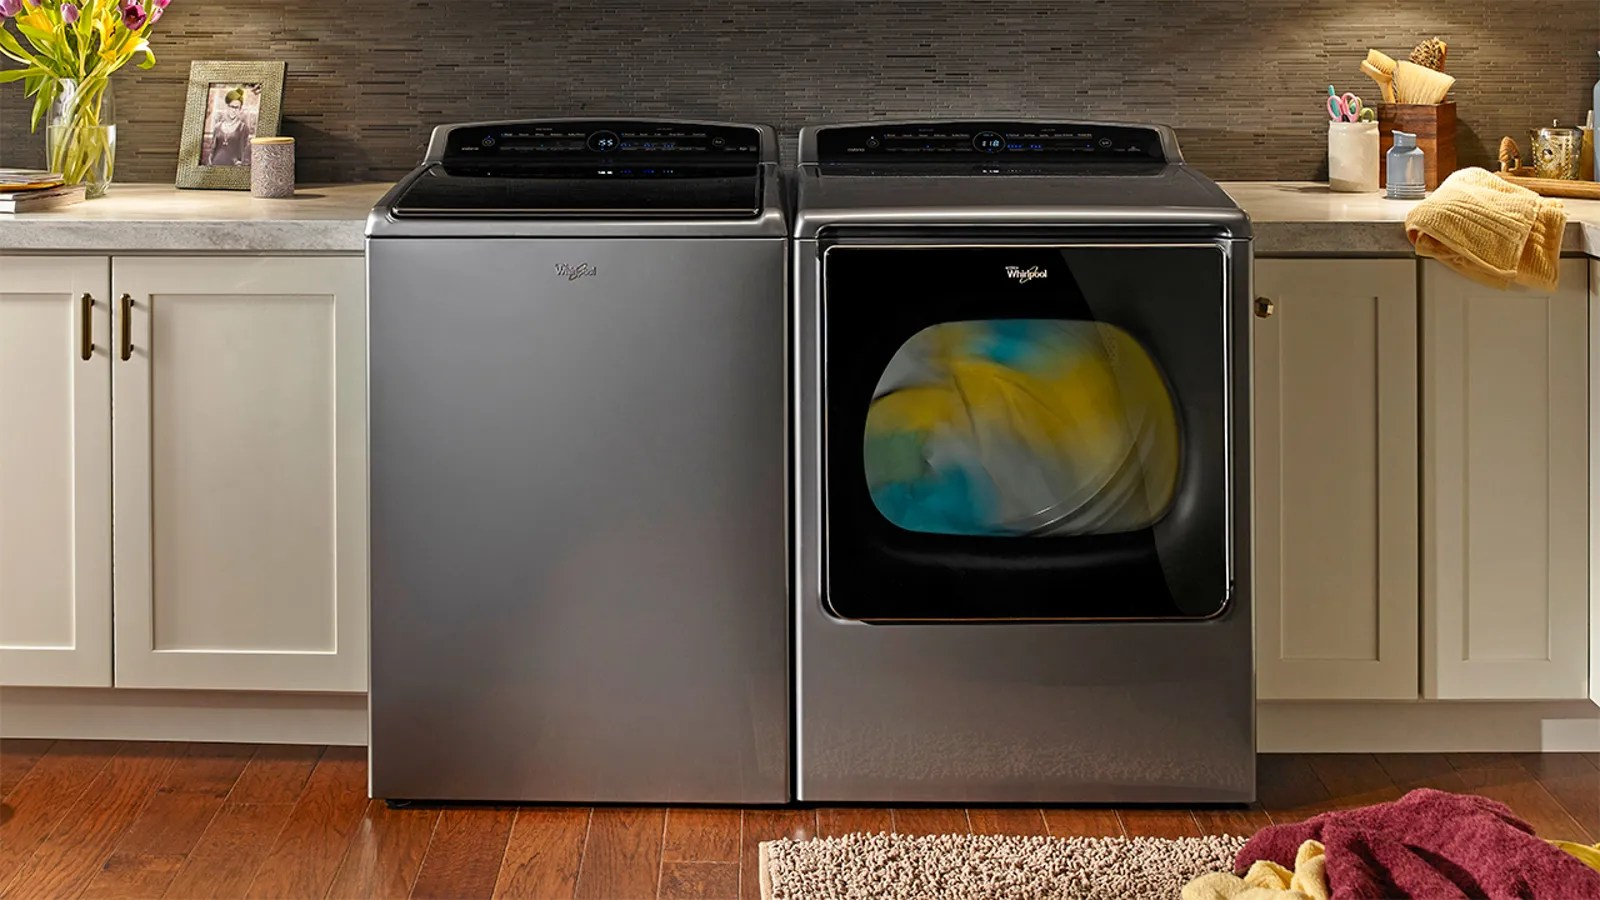 New Washer And Dryer Whirlpool S New Washer And Dryer Automatically Restock Detergents